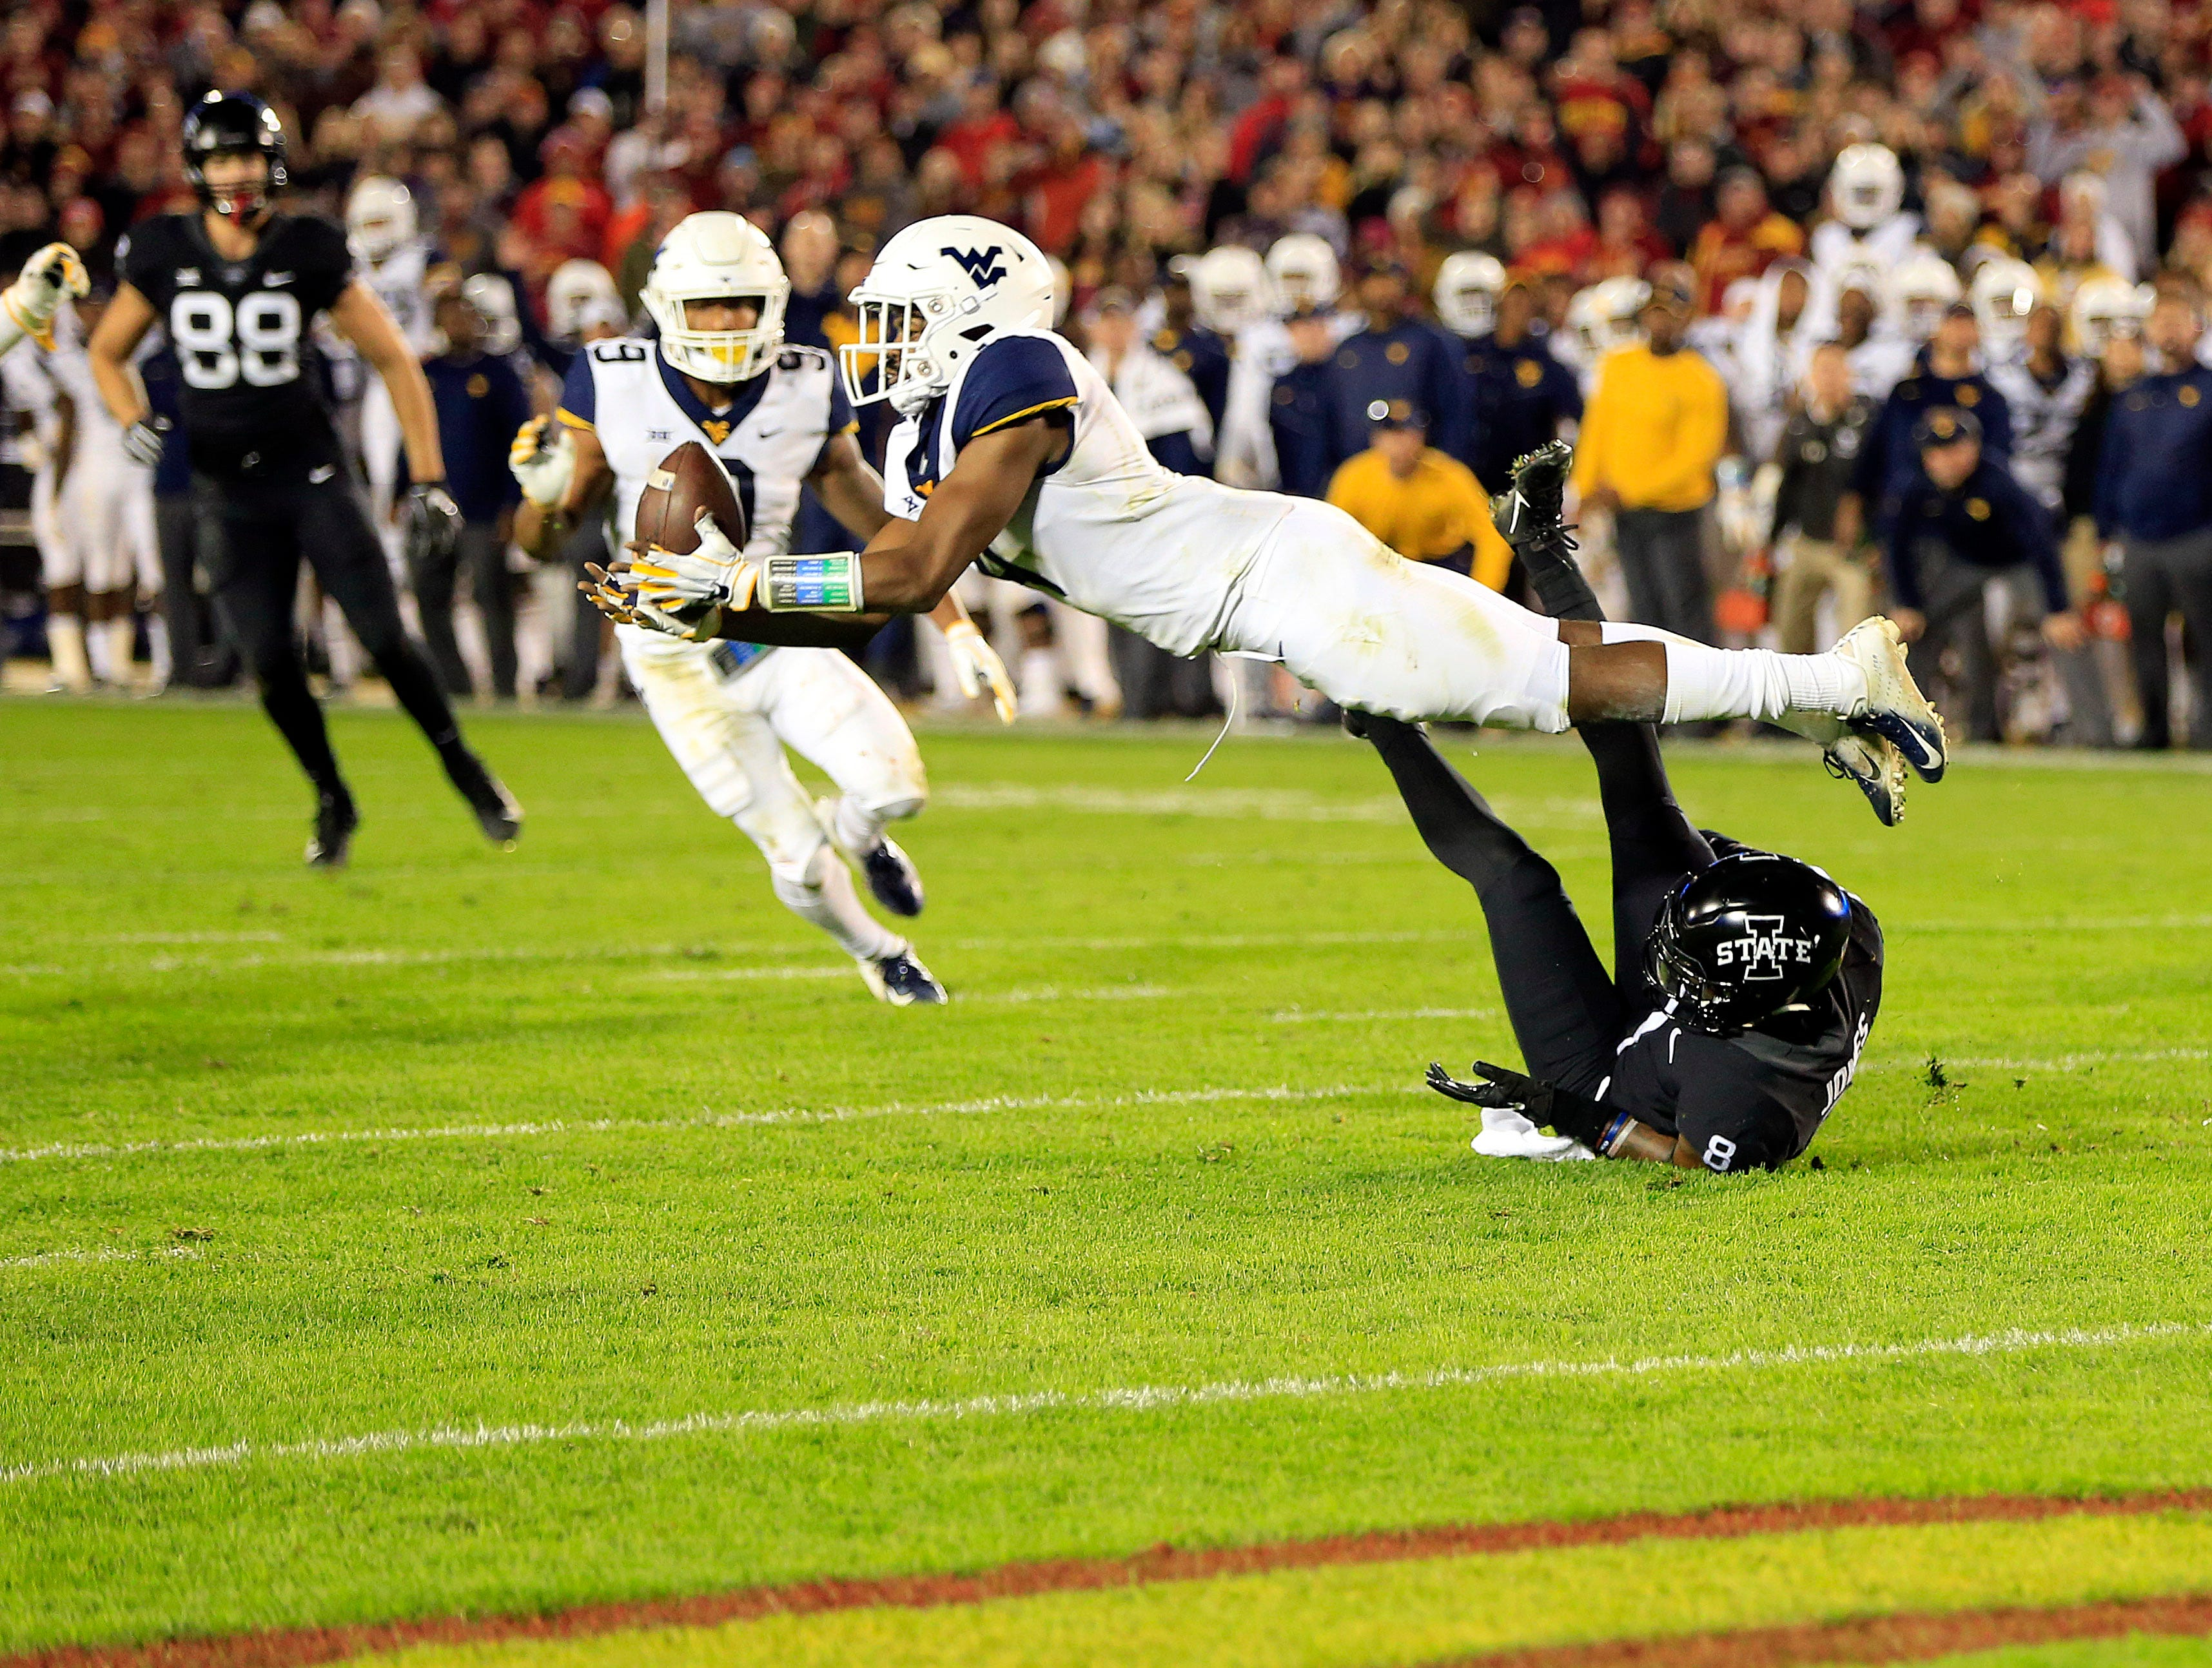 West Virginia CB Josh Norwood lays out for a near interception during the Iowa State West Virginia game at Jack Trice Stadium Saturday, Oct. 13, 2018.